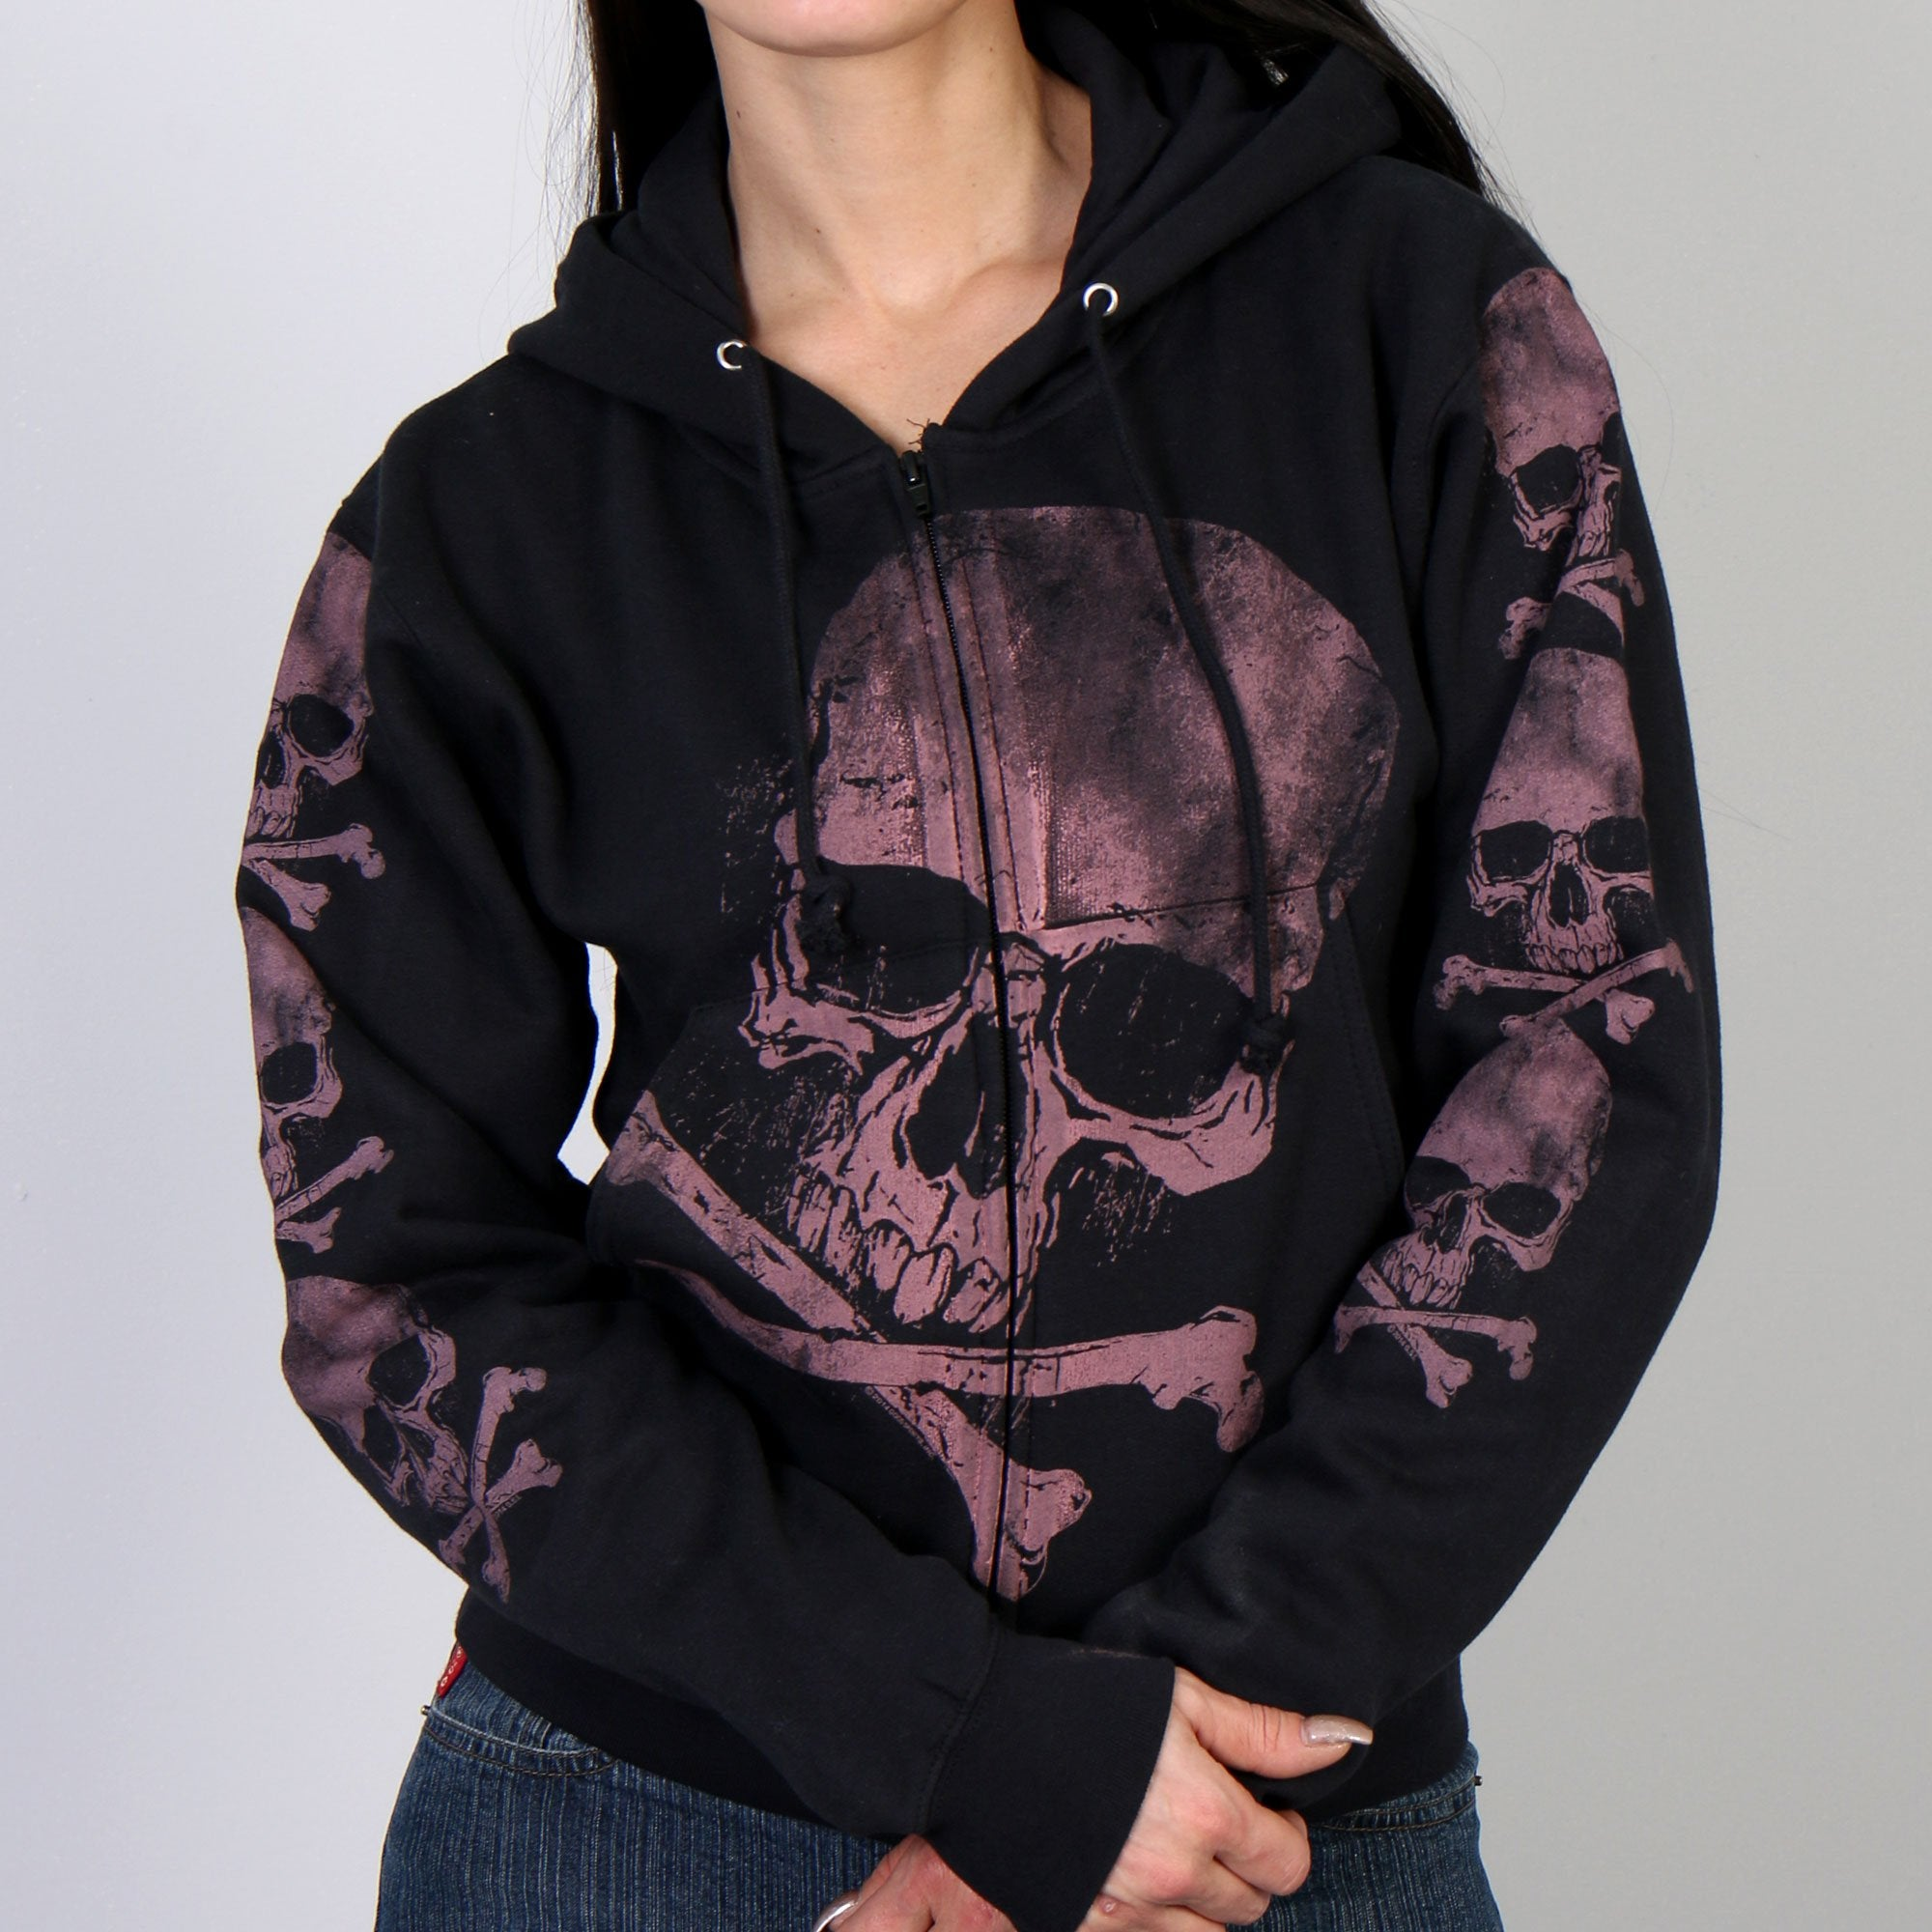 Hot Leathers Skull and Crossbones Zip-Up Hooded Sweat Shirt